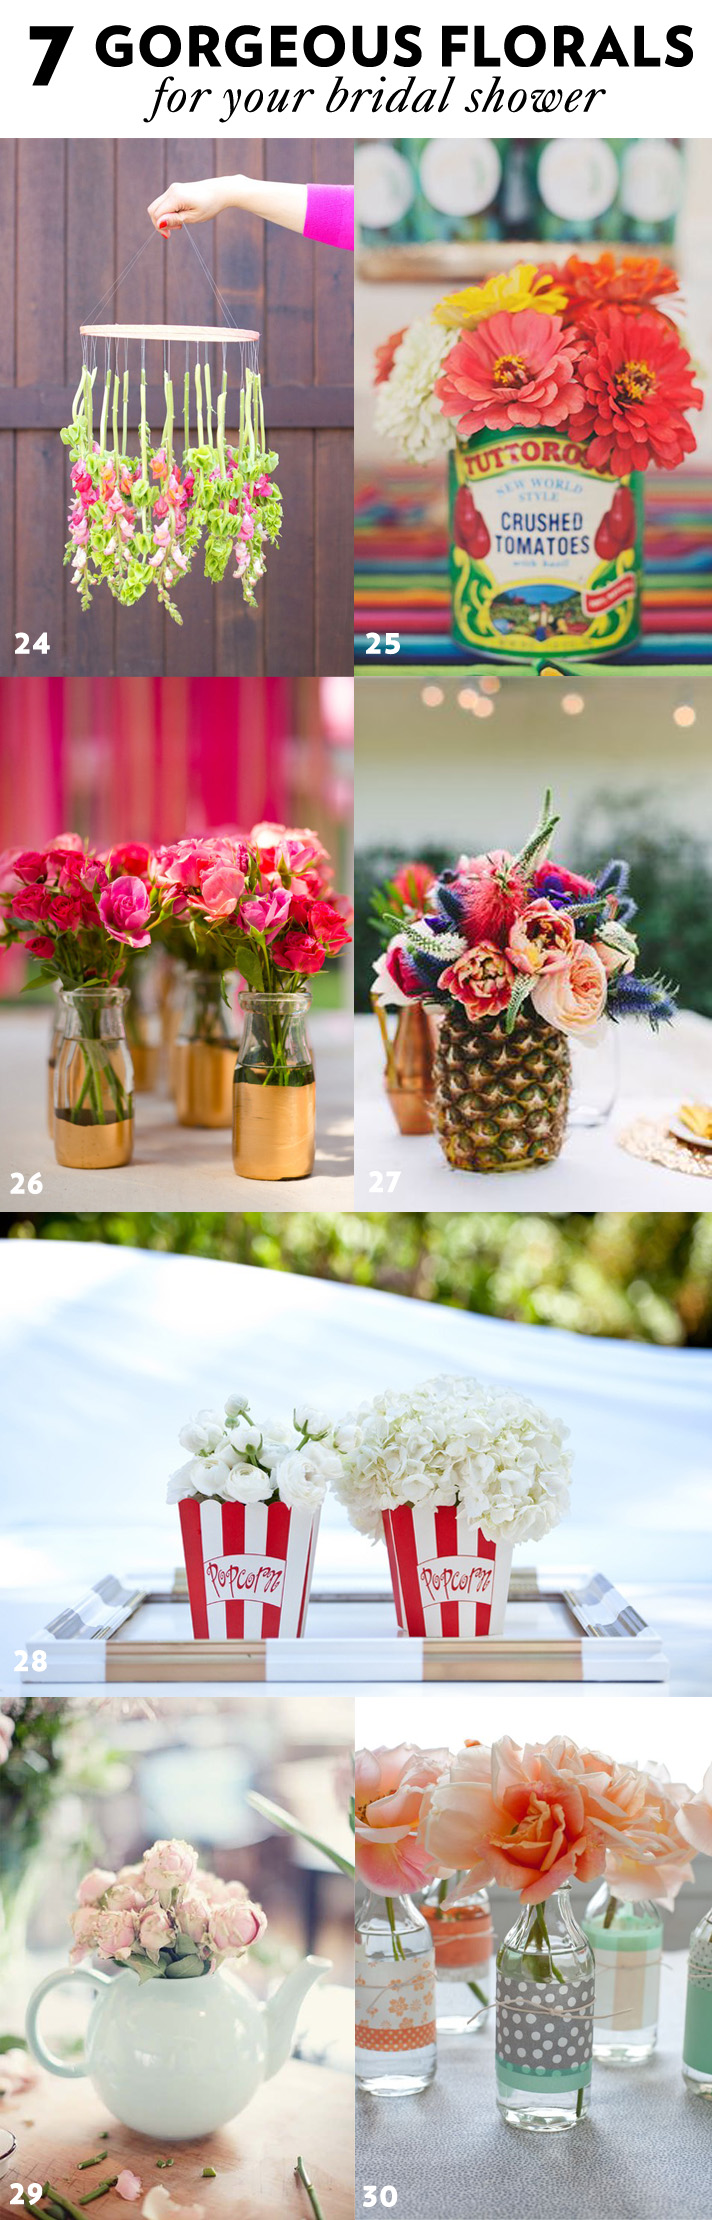 50 Simple and Stylish DIY Bridal Shower & Bachelorette ...